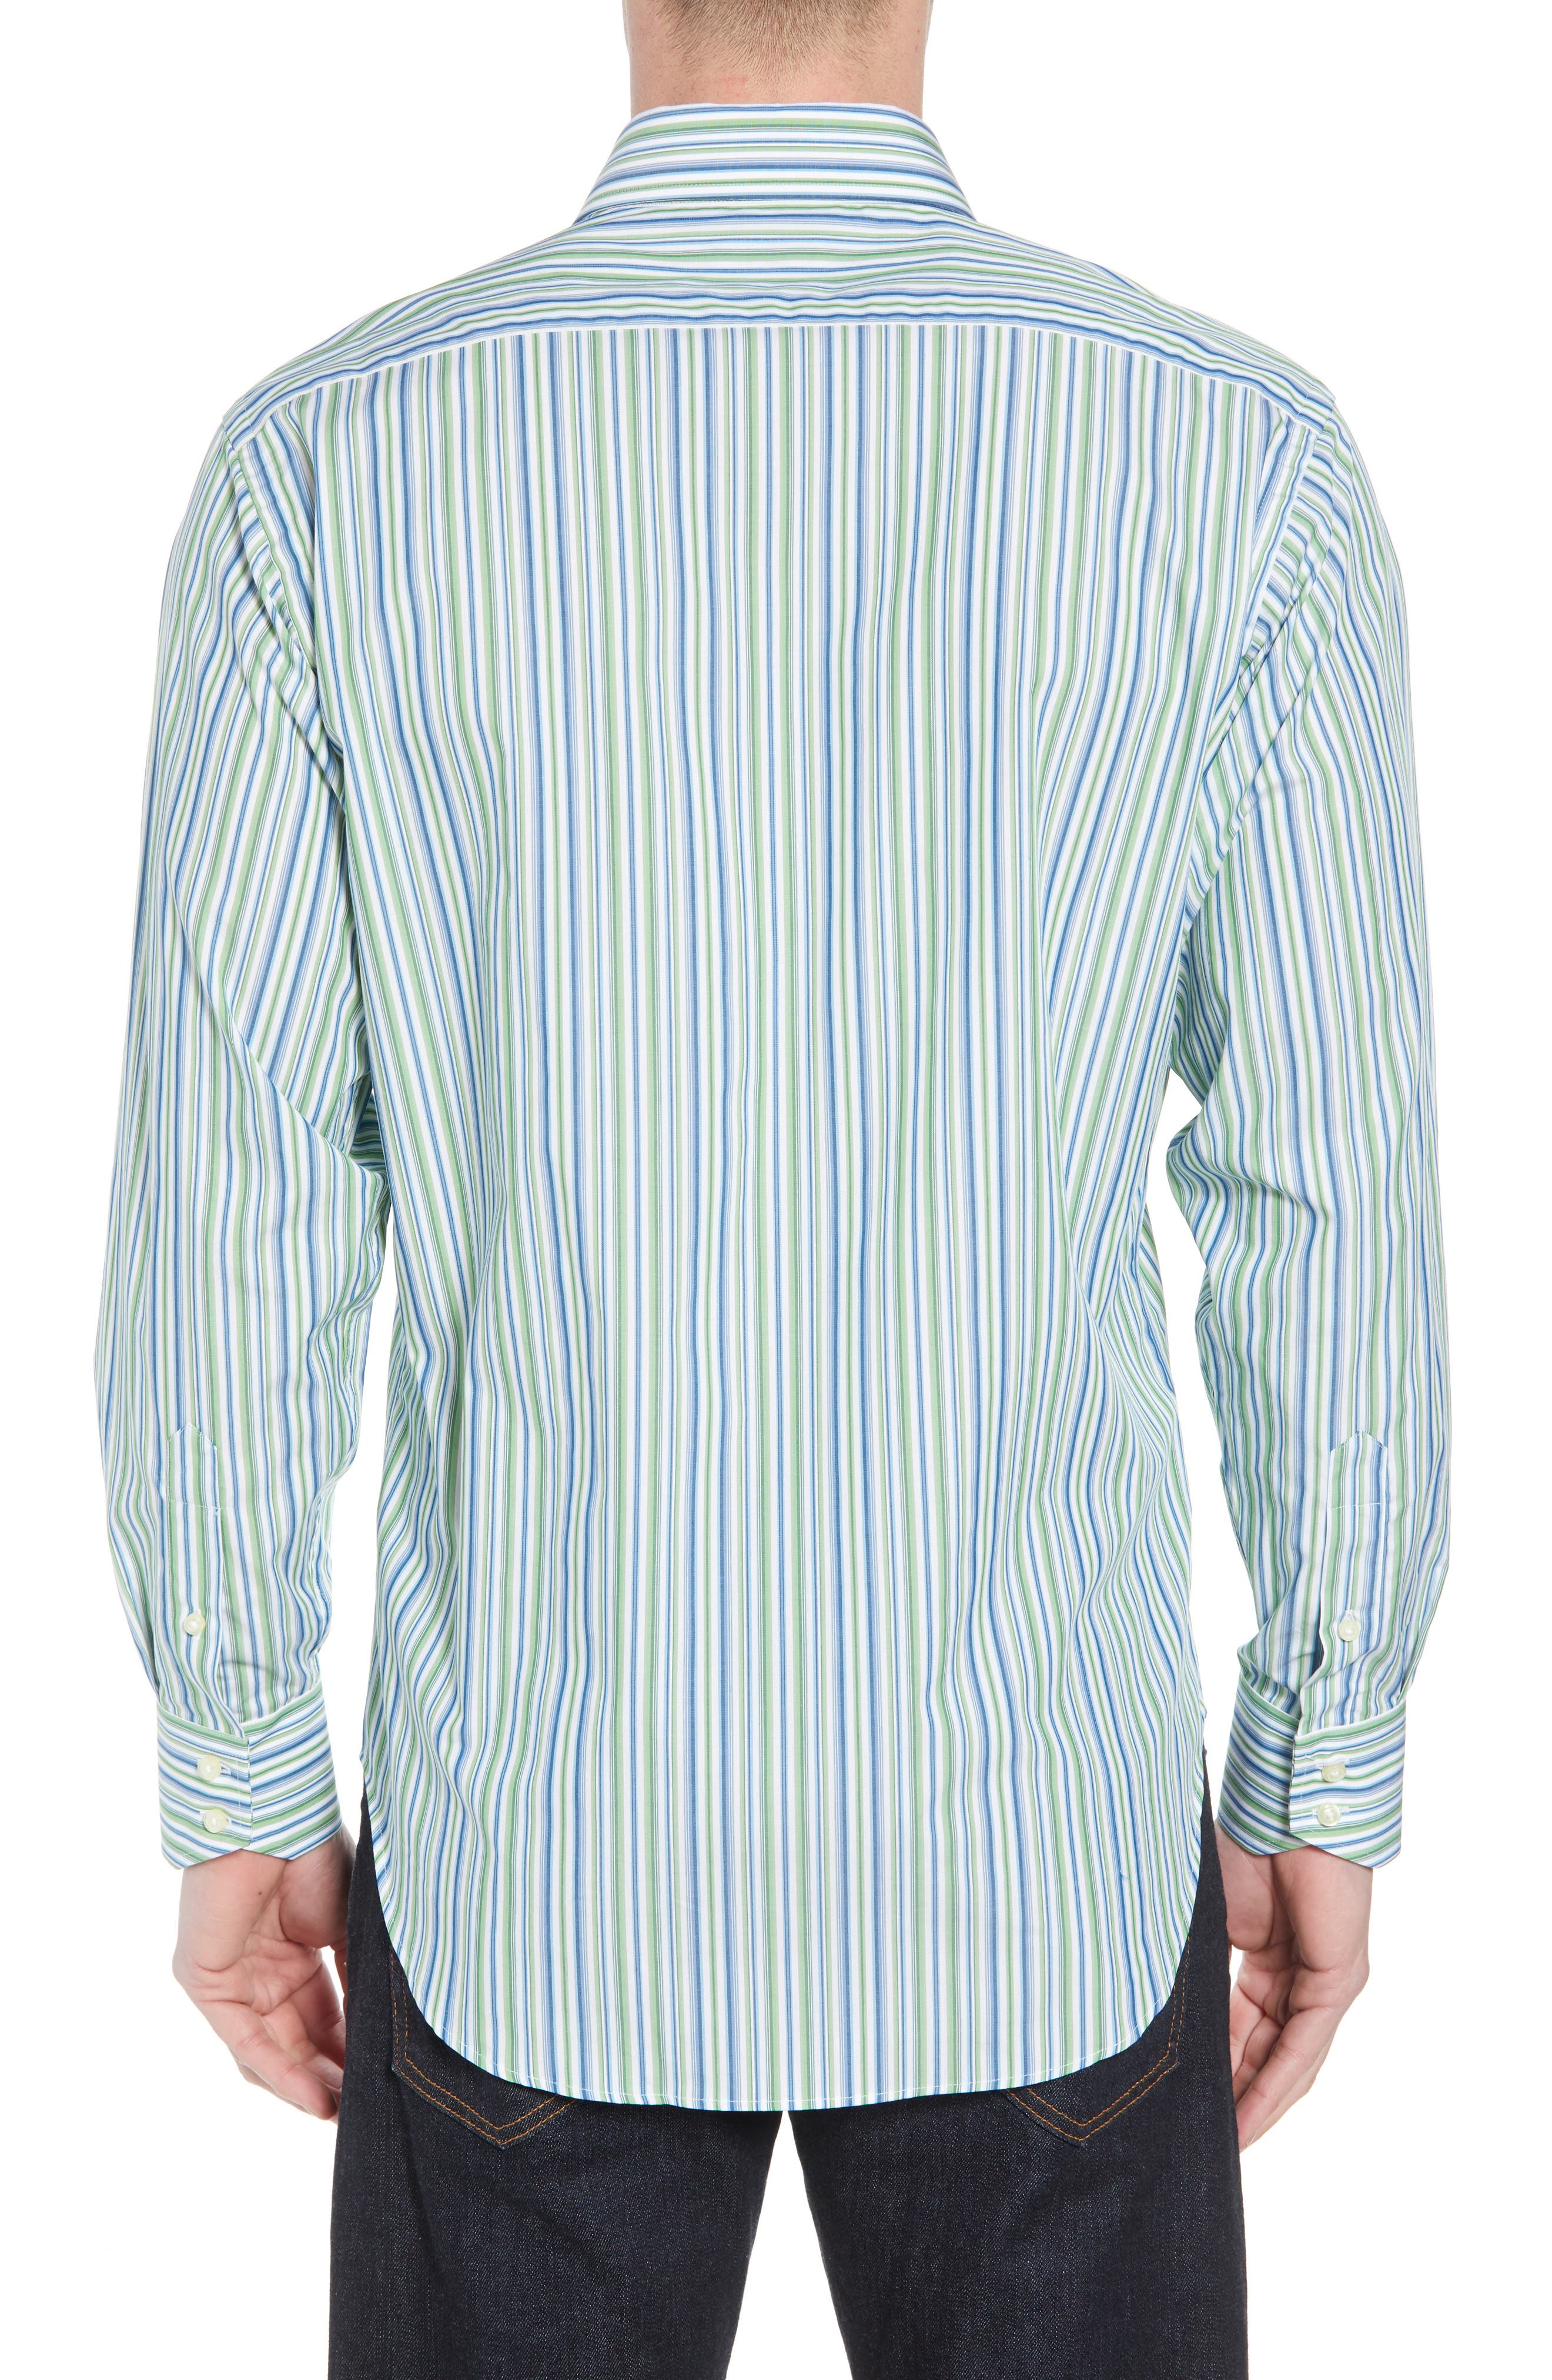 Regular Fit Stripe Sport Shirt,                             Alternate thumbnail 2, color,                             Green